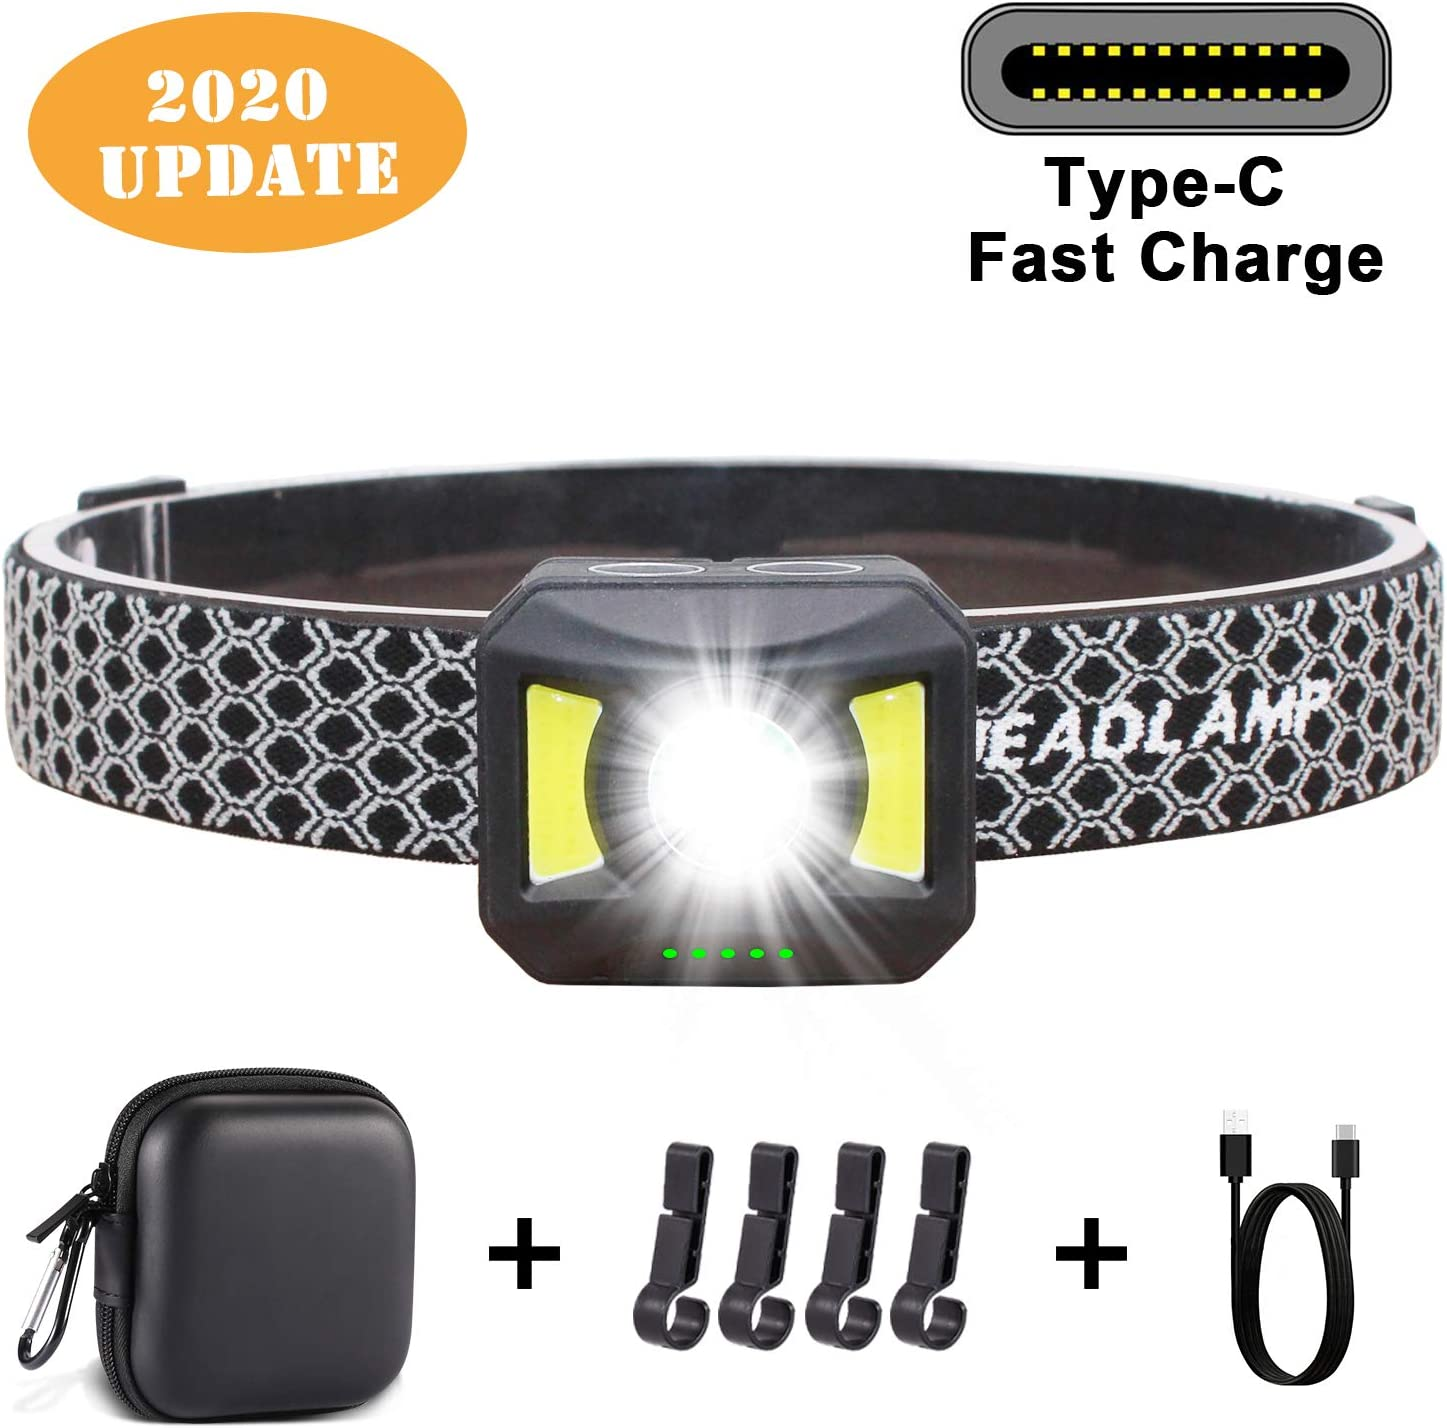 Running Camping Hiking Headlamps for Adults /& Kids Rechargeable Headlamp 7 Modes Headlamp Flashlight IPX6 Waterproof 800 Lumen Ultra Bright LED Headlamp with Red Light Lightweight Less Press